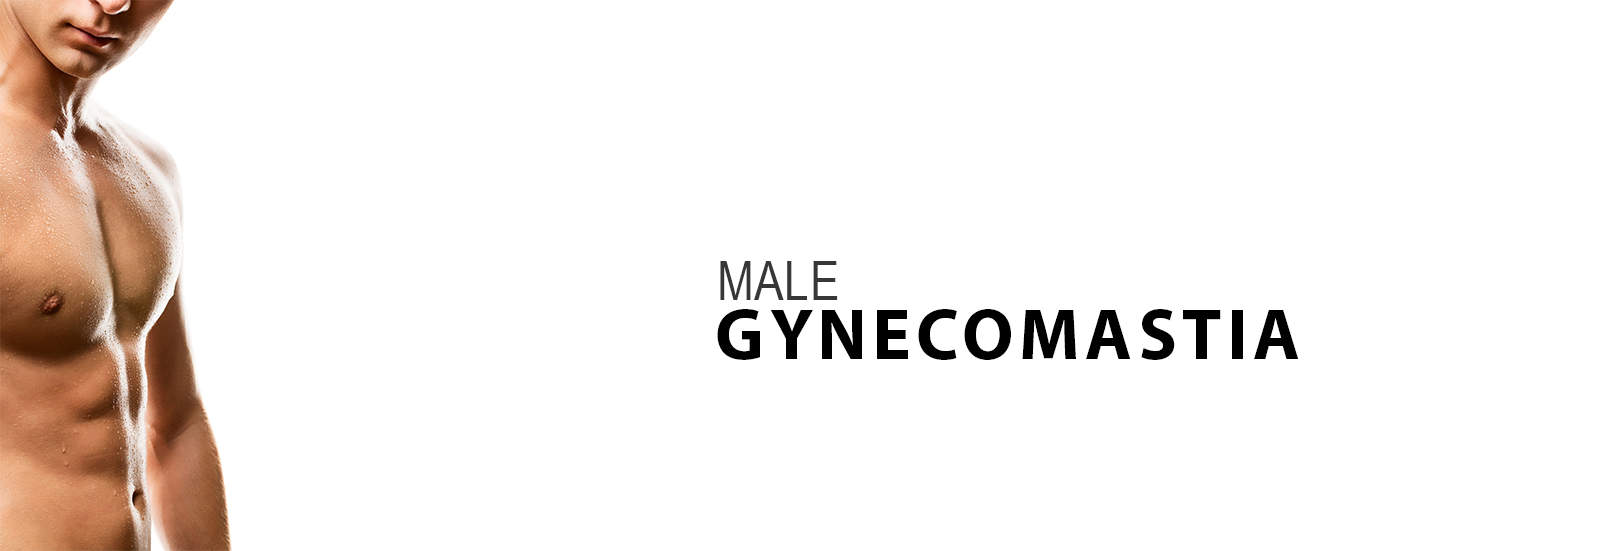 how to know if you have gynecomastia